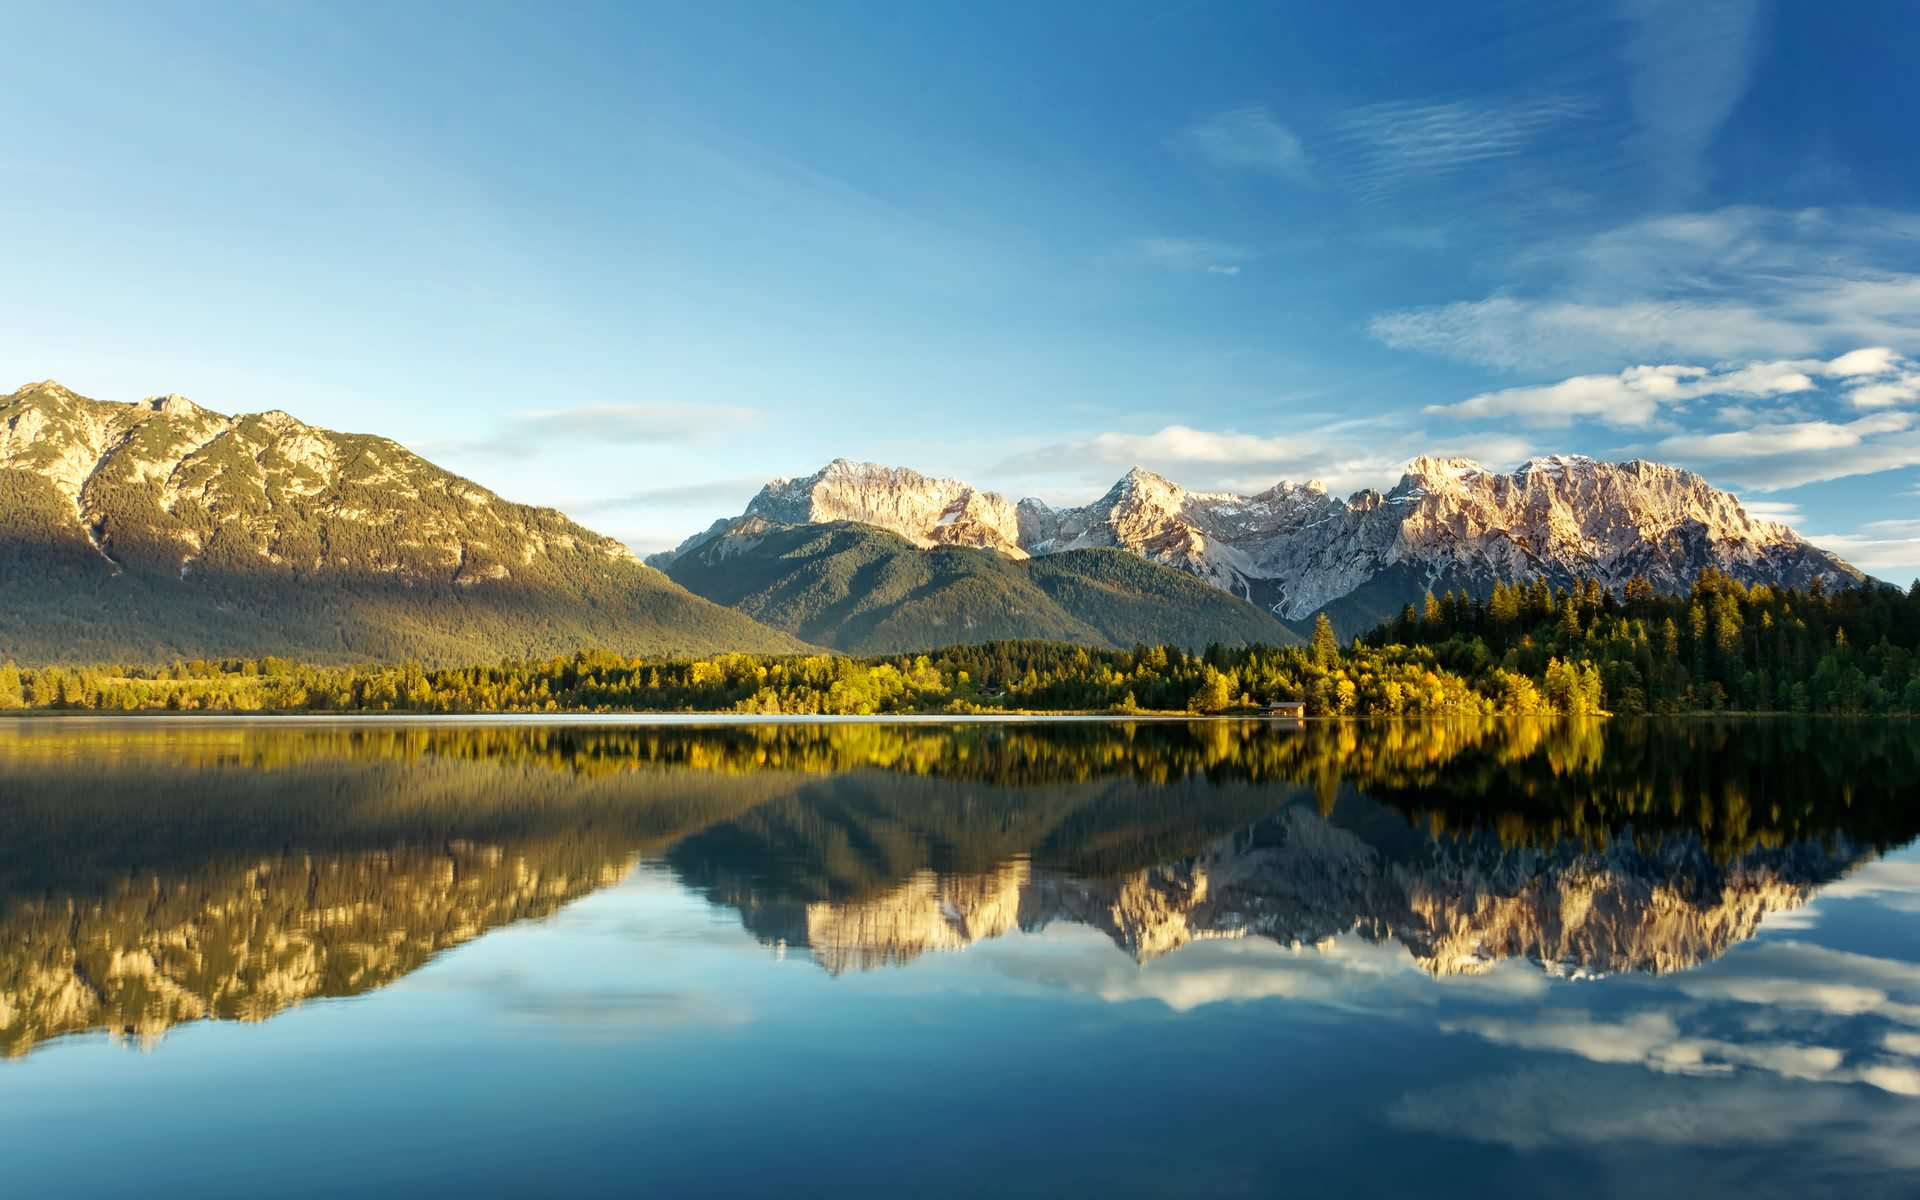 scenic background pictures mountains water 1920x1200 1920x1200